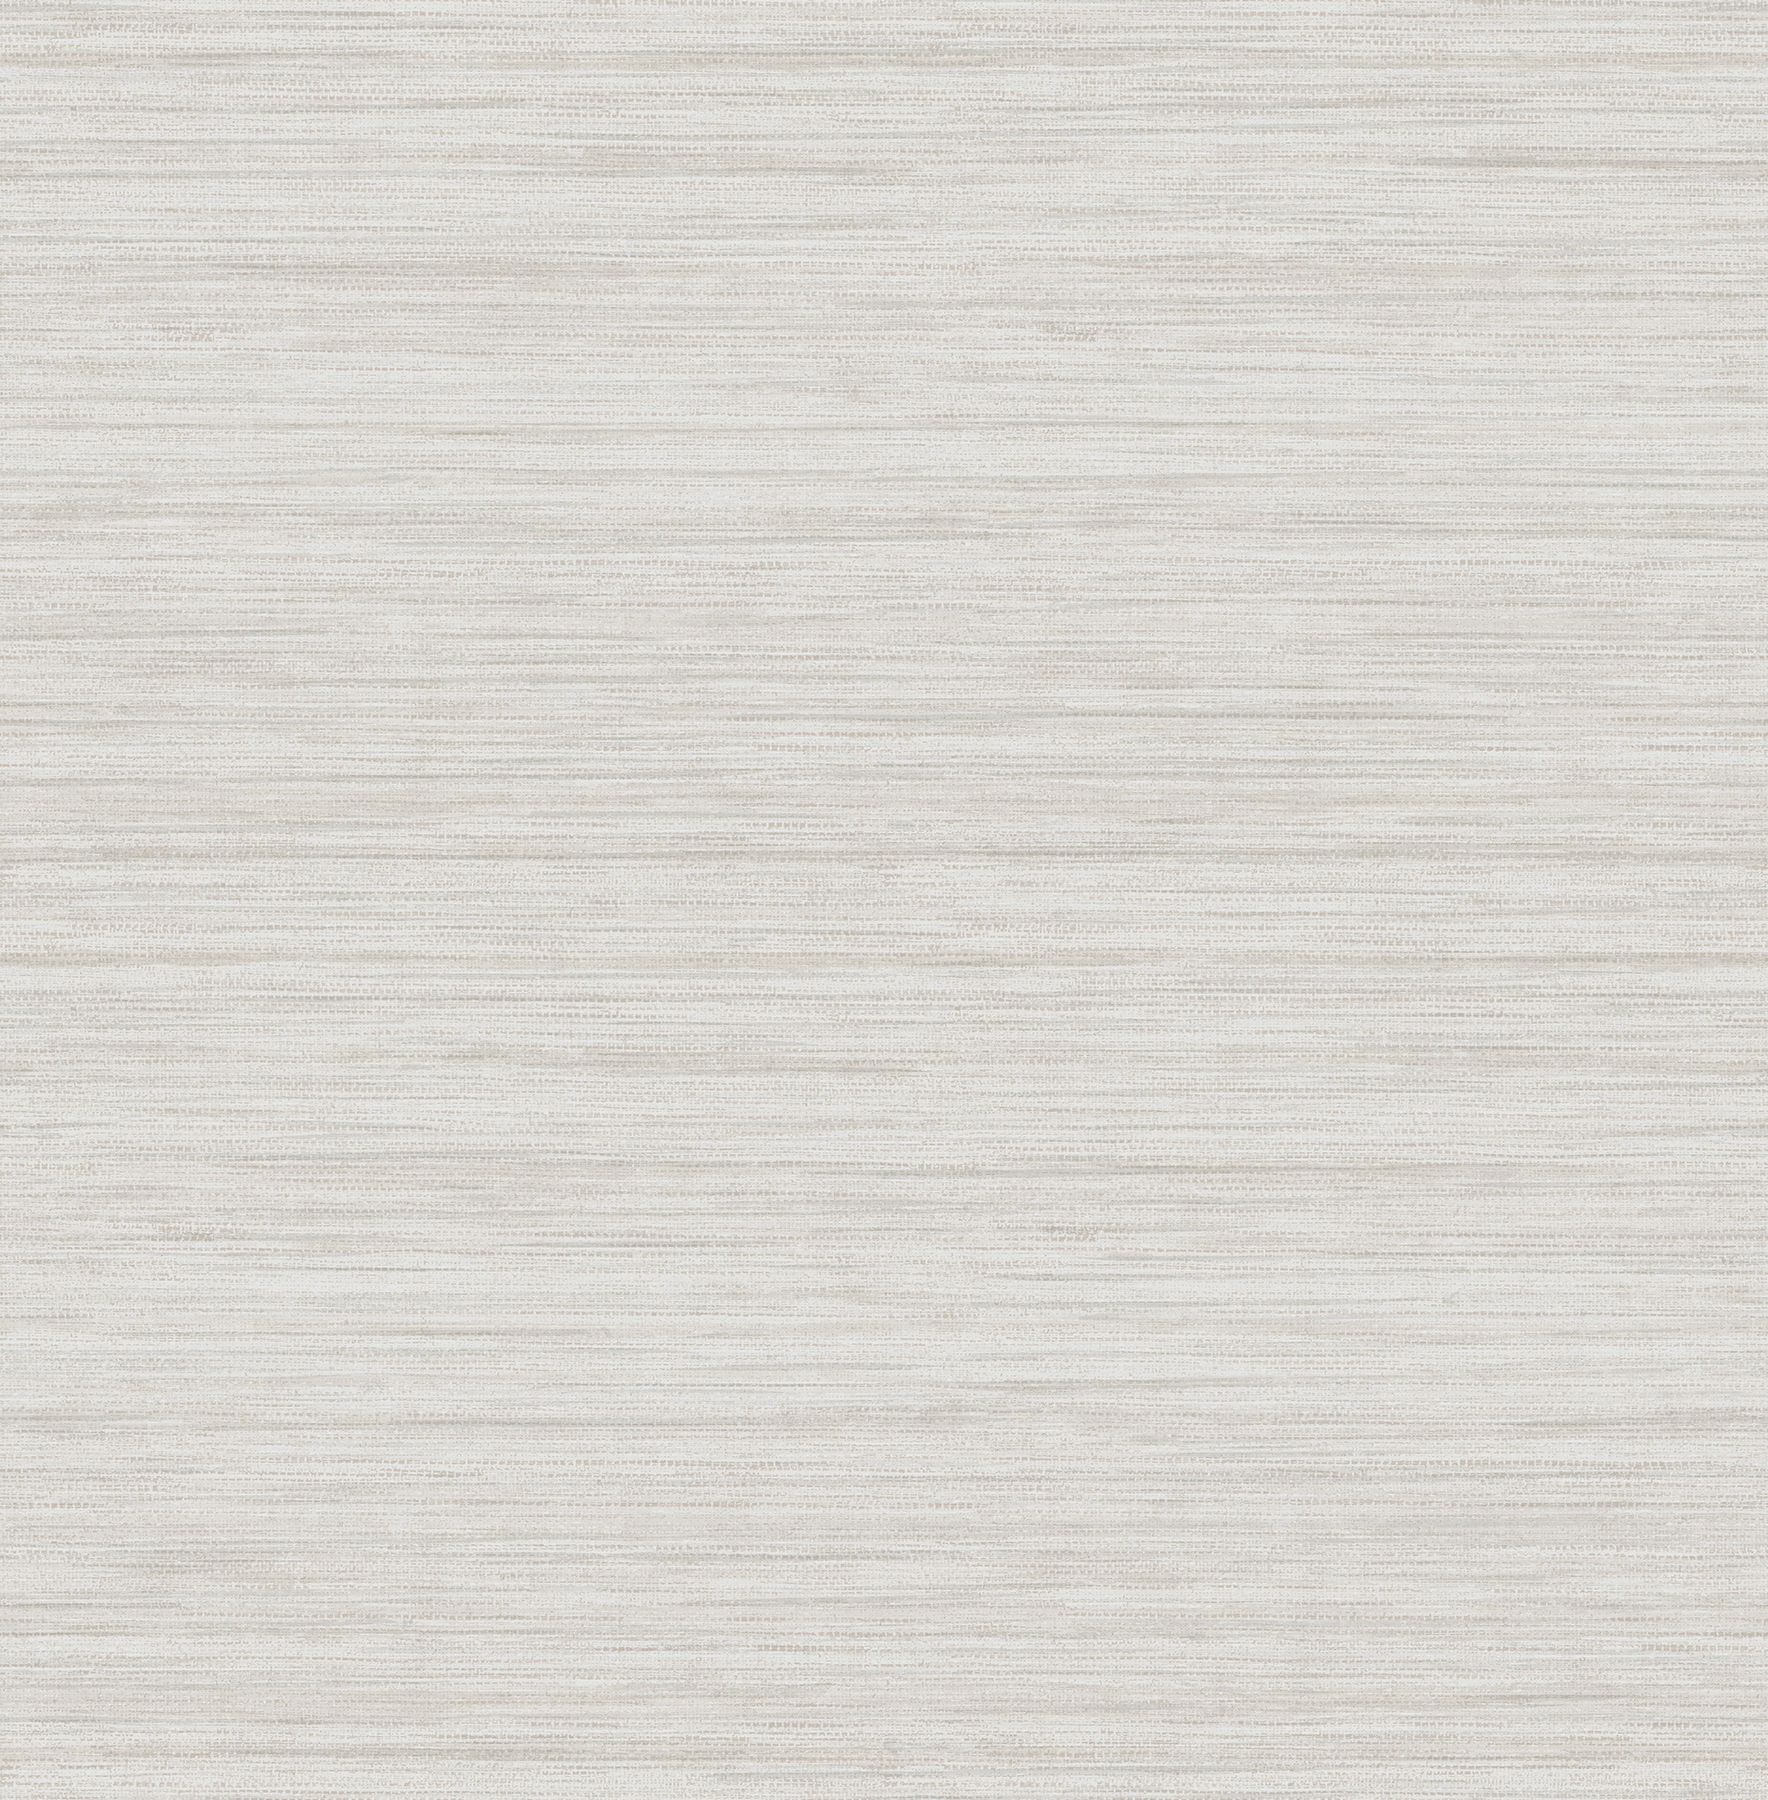 Picture of Barnaby Off-White Faux Grasscloth Wallpaper